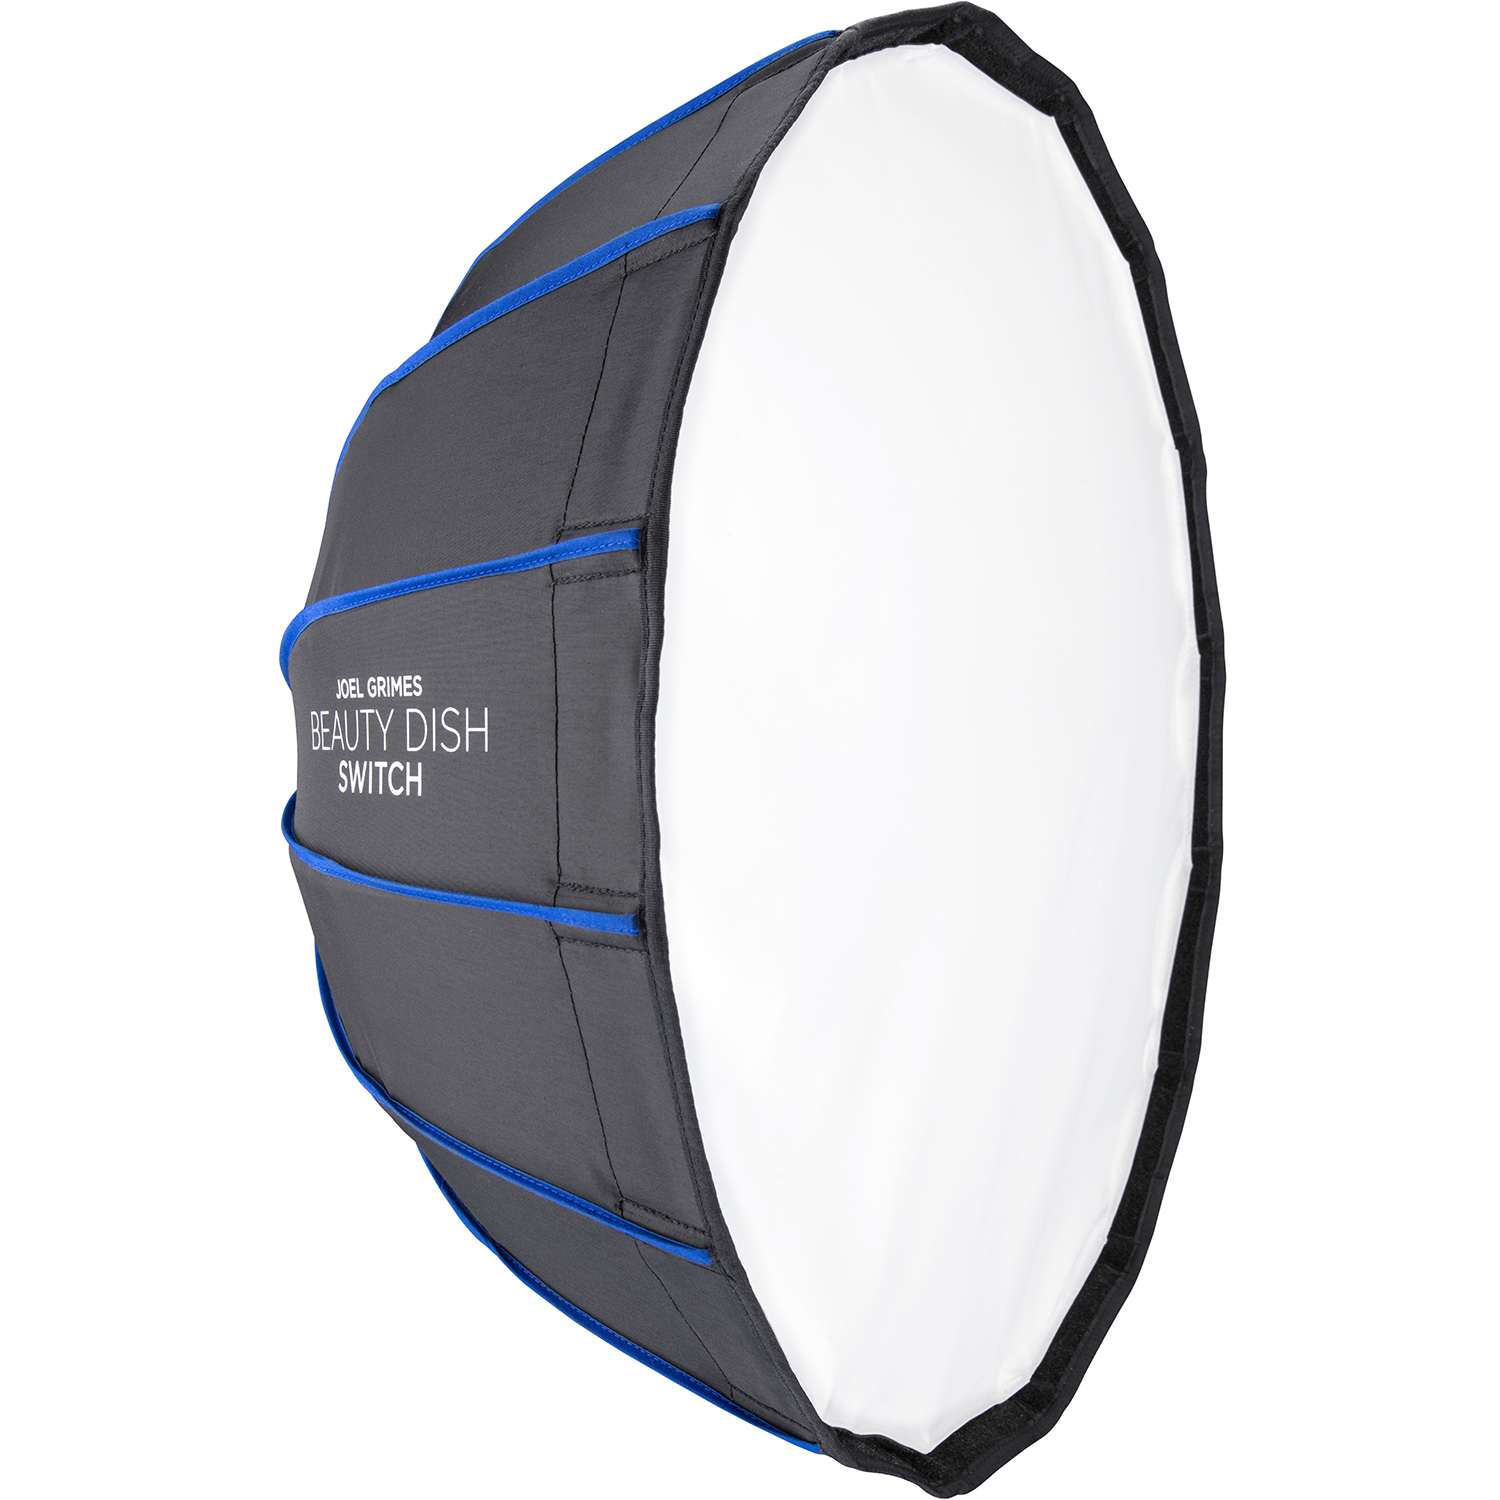 Beauty Dish Switch (White Interior)